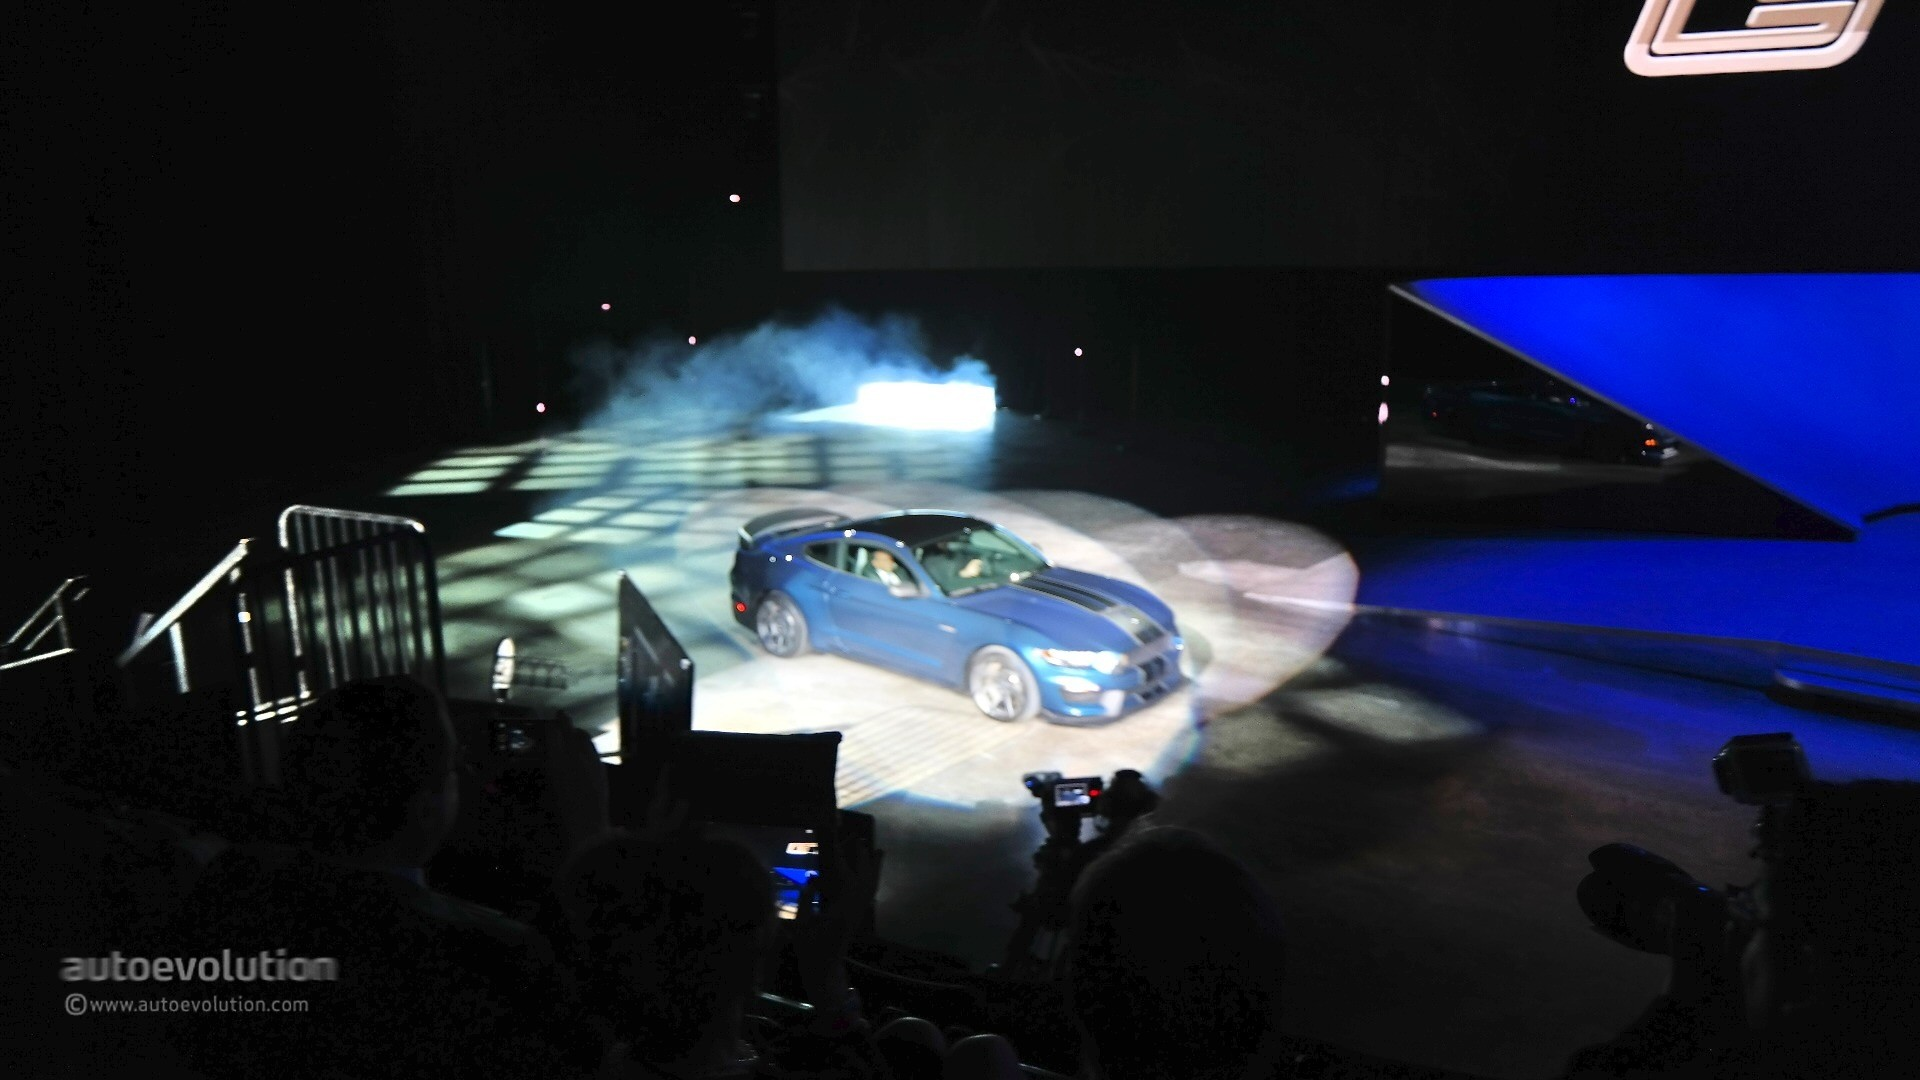 New shelby gt350r mustang unveiled in detroit with burnout and over 500 hp live photos